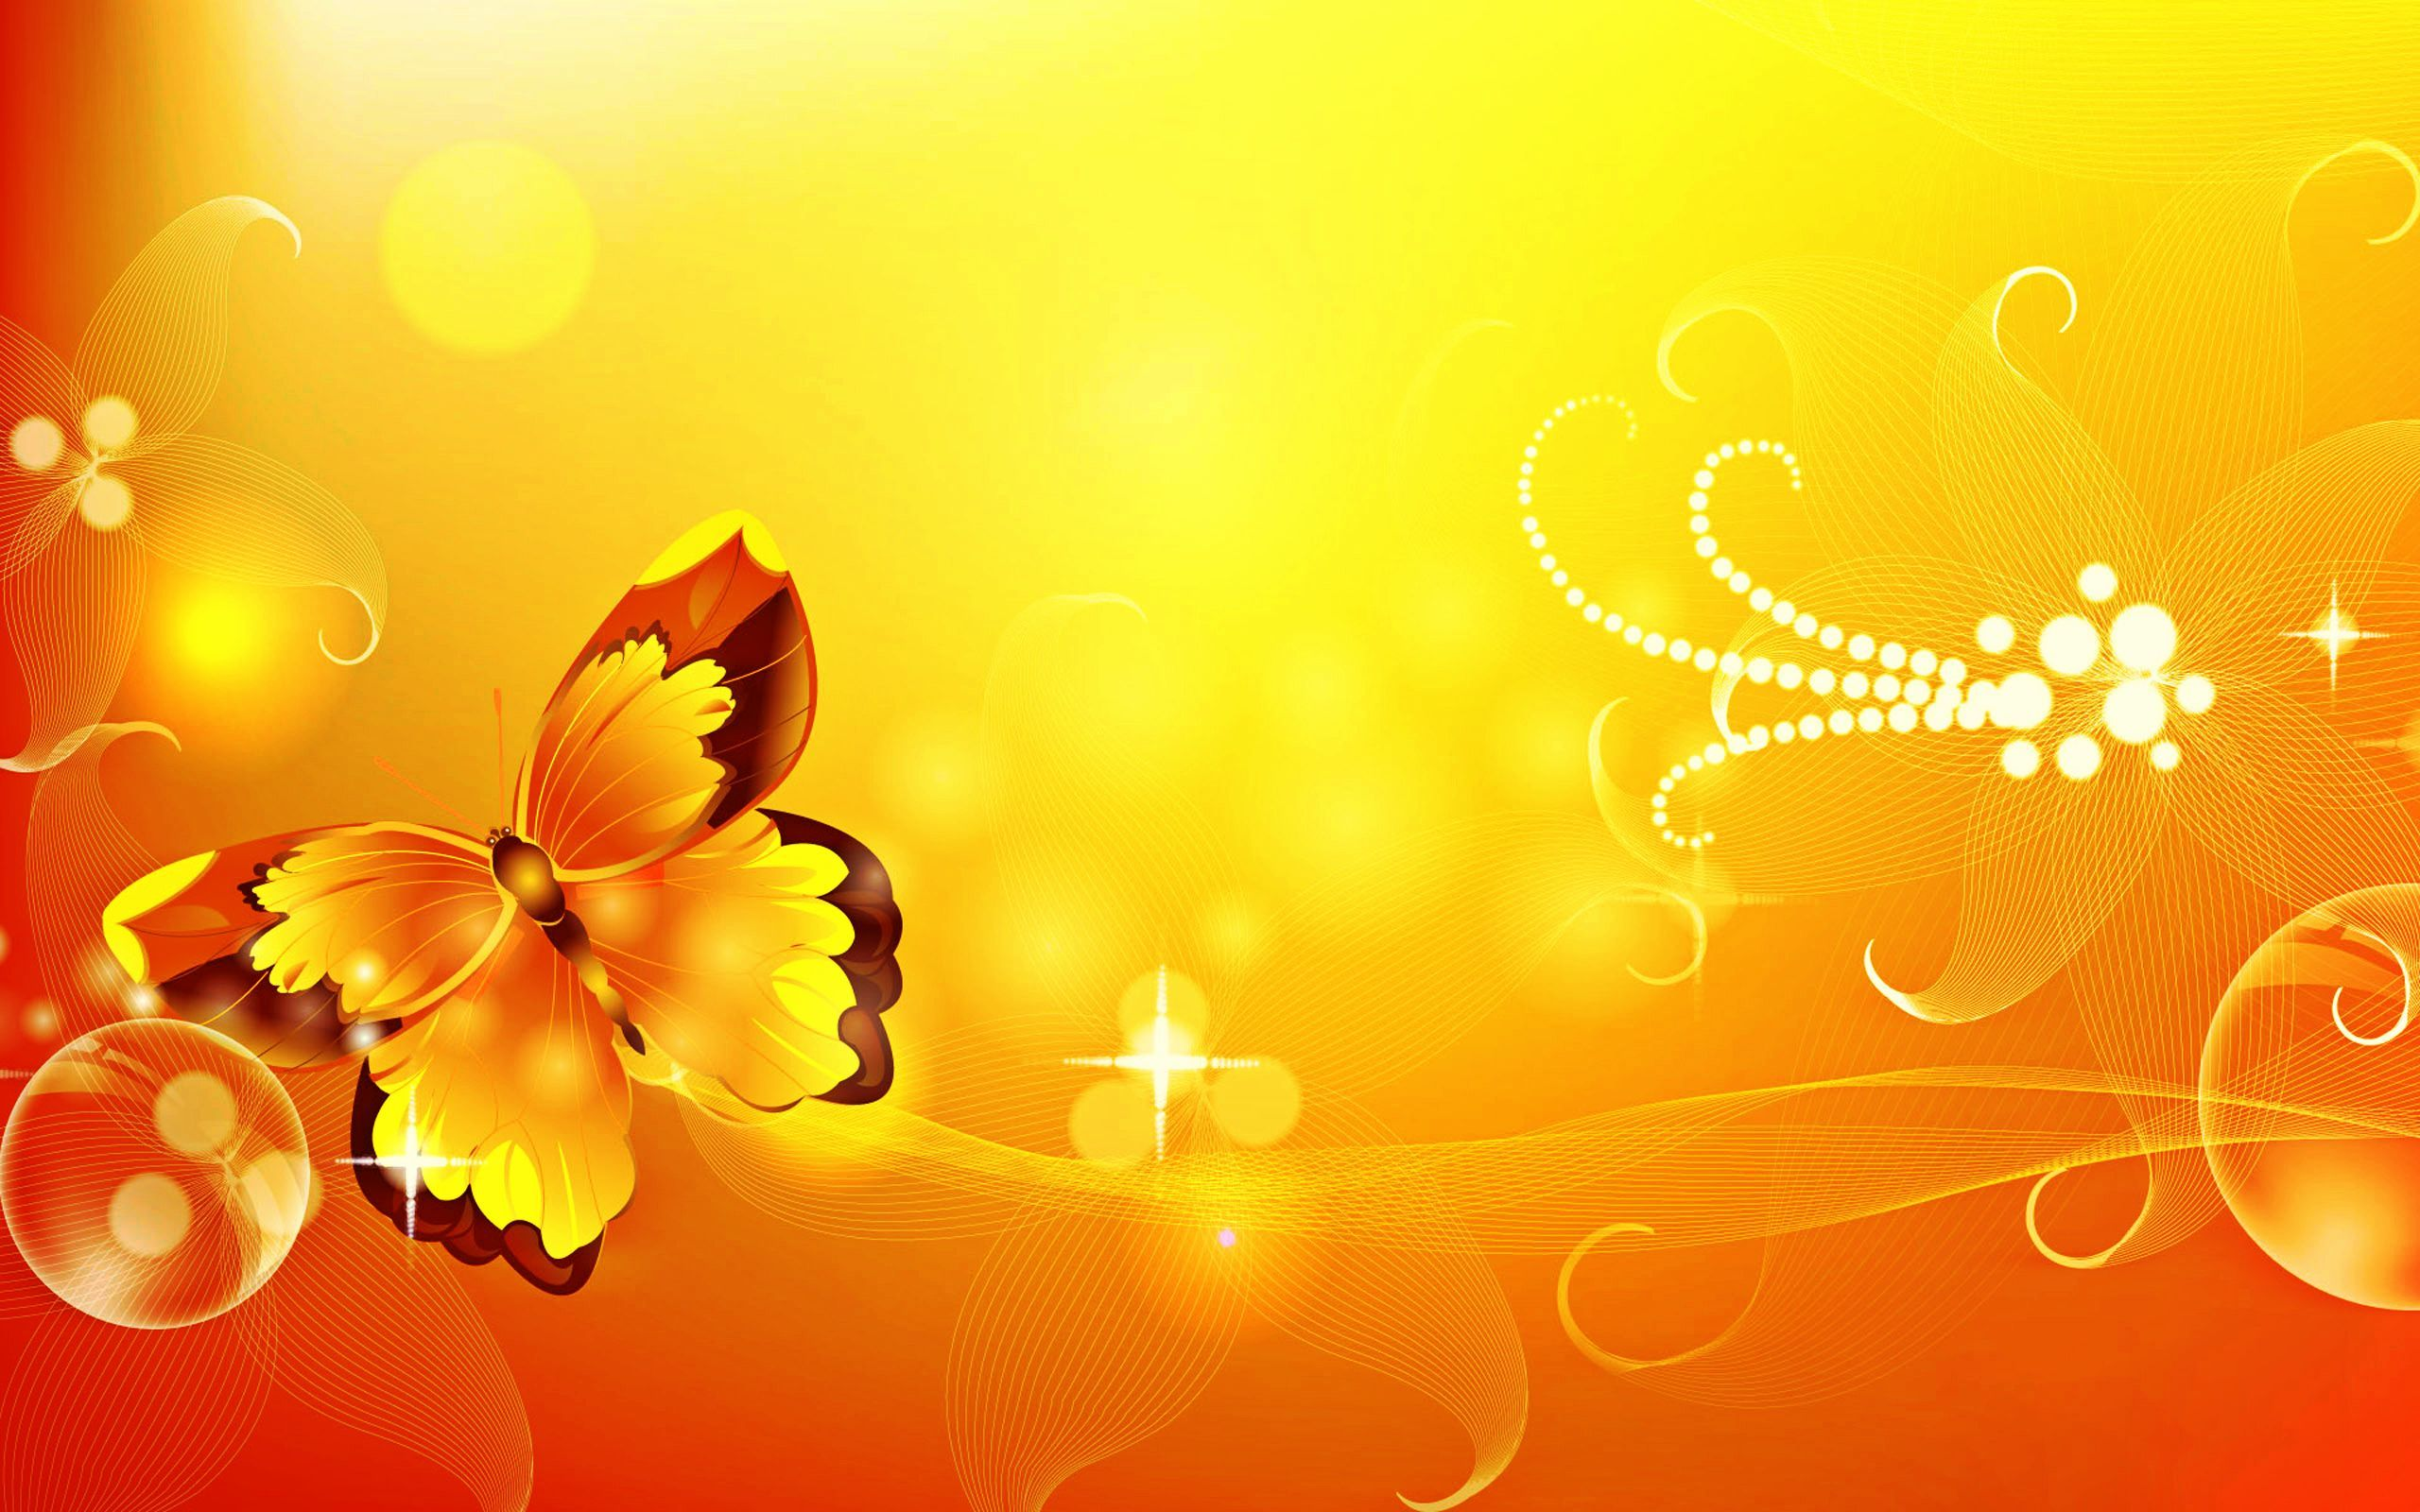 Hd butterfly flowers graphic design yellow background for Window design hd image